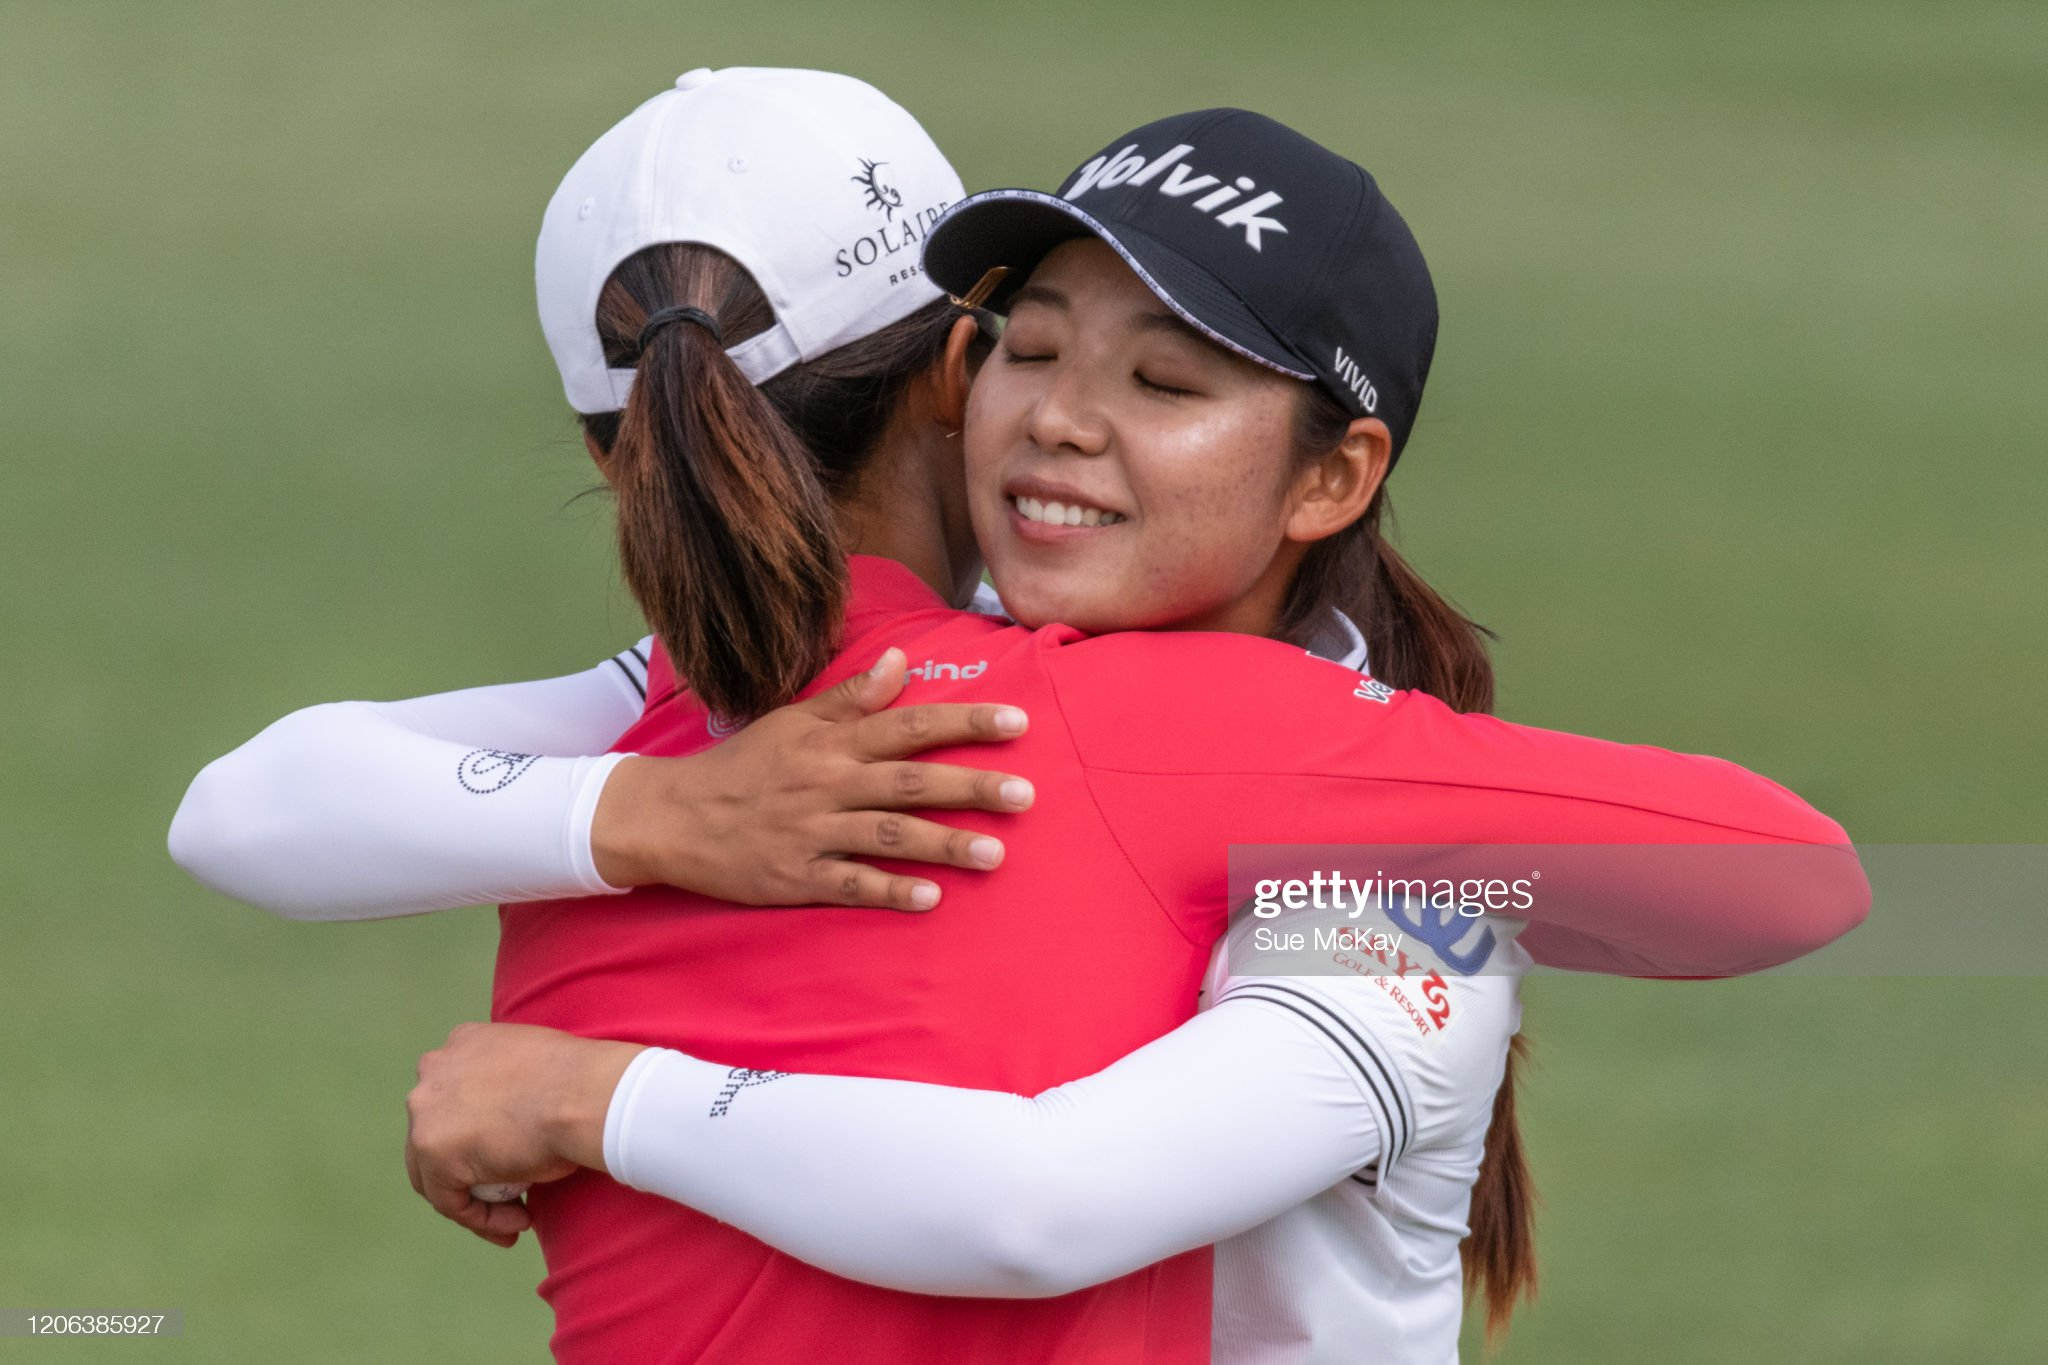 https://media.gettyimages.com/photos/yu-liu-of-china-and-mi-hyang-lee-of-korea-embrace-at-the-end-of-day-picture-id1206385927?s=2048x2048